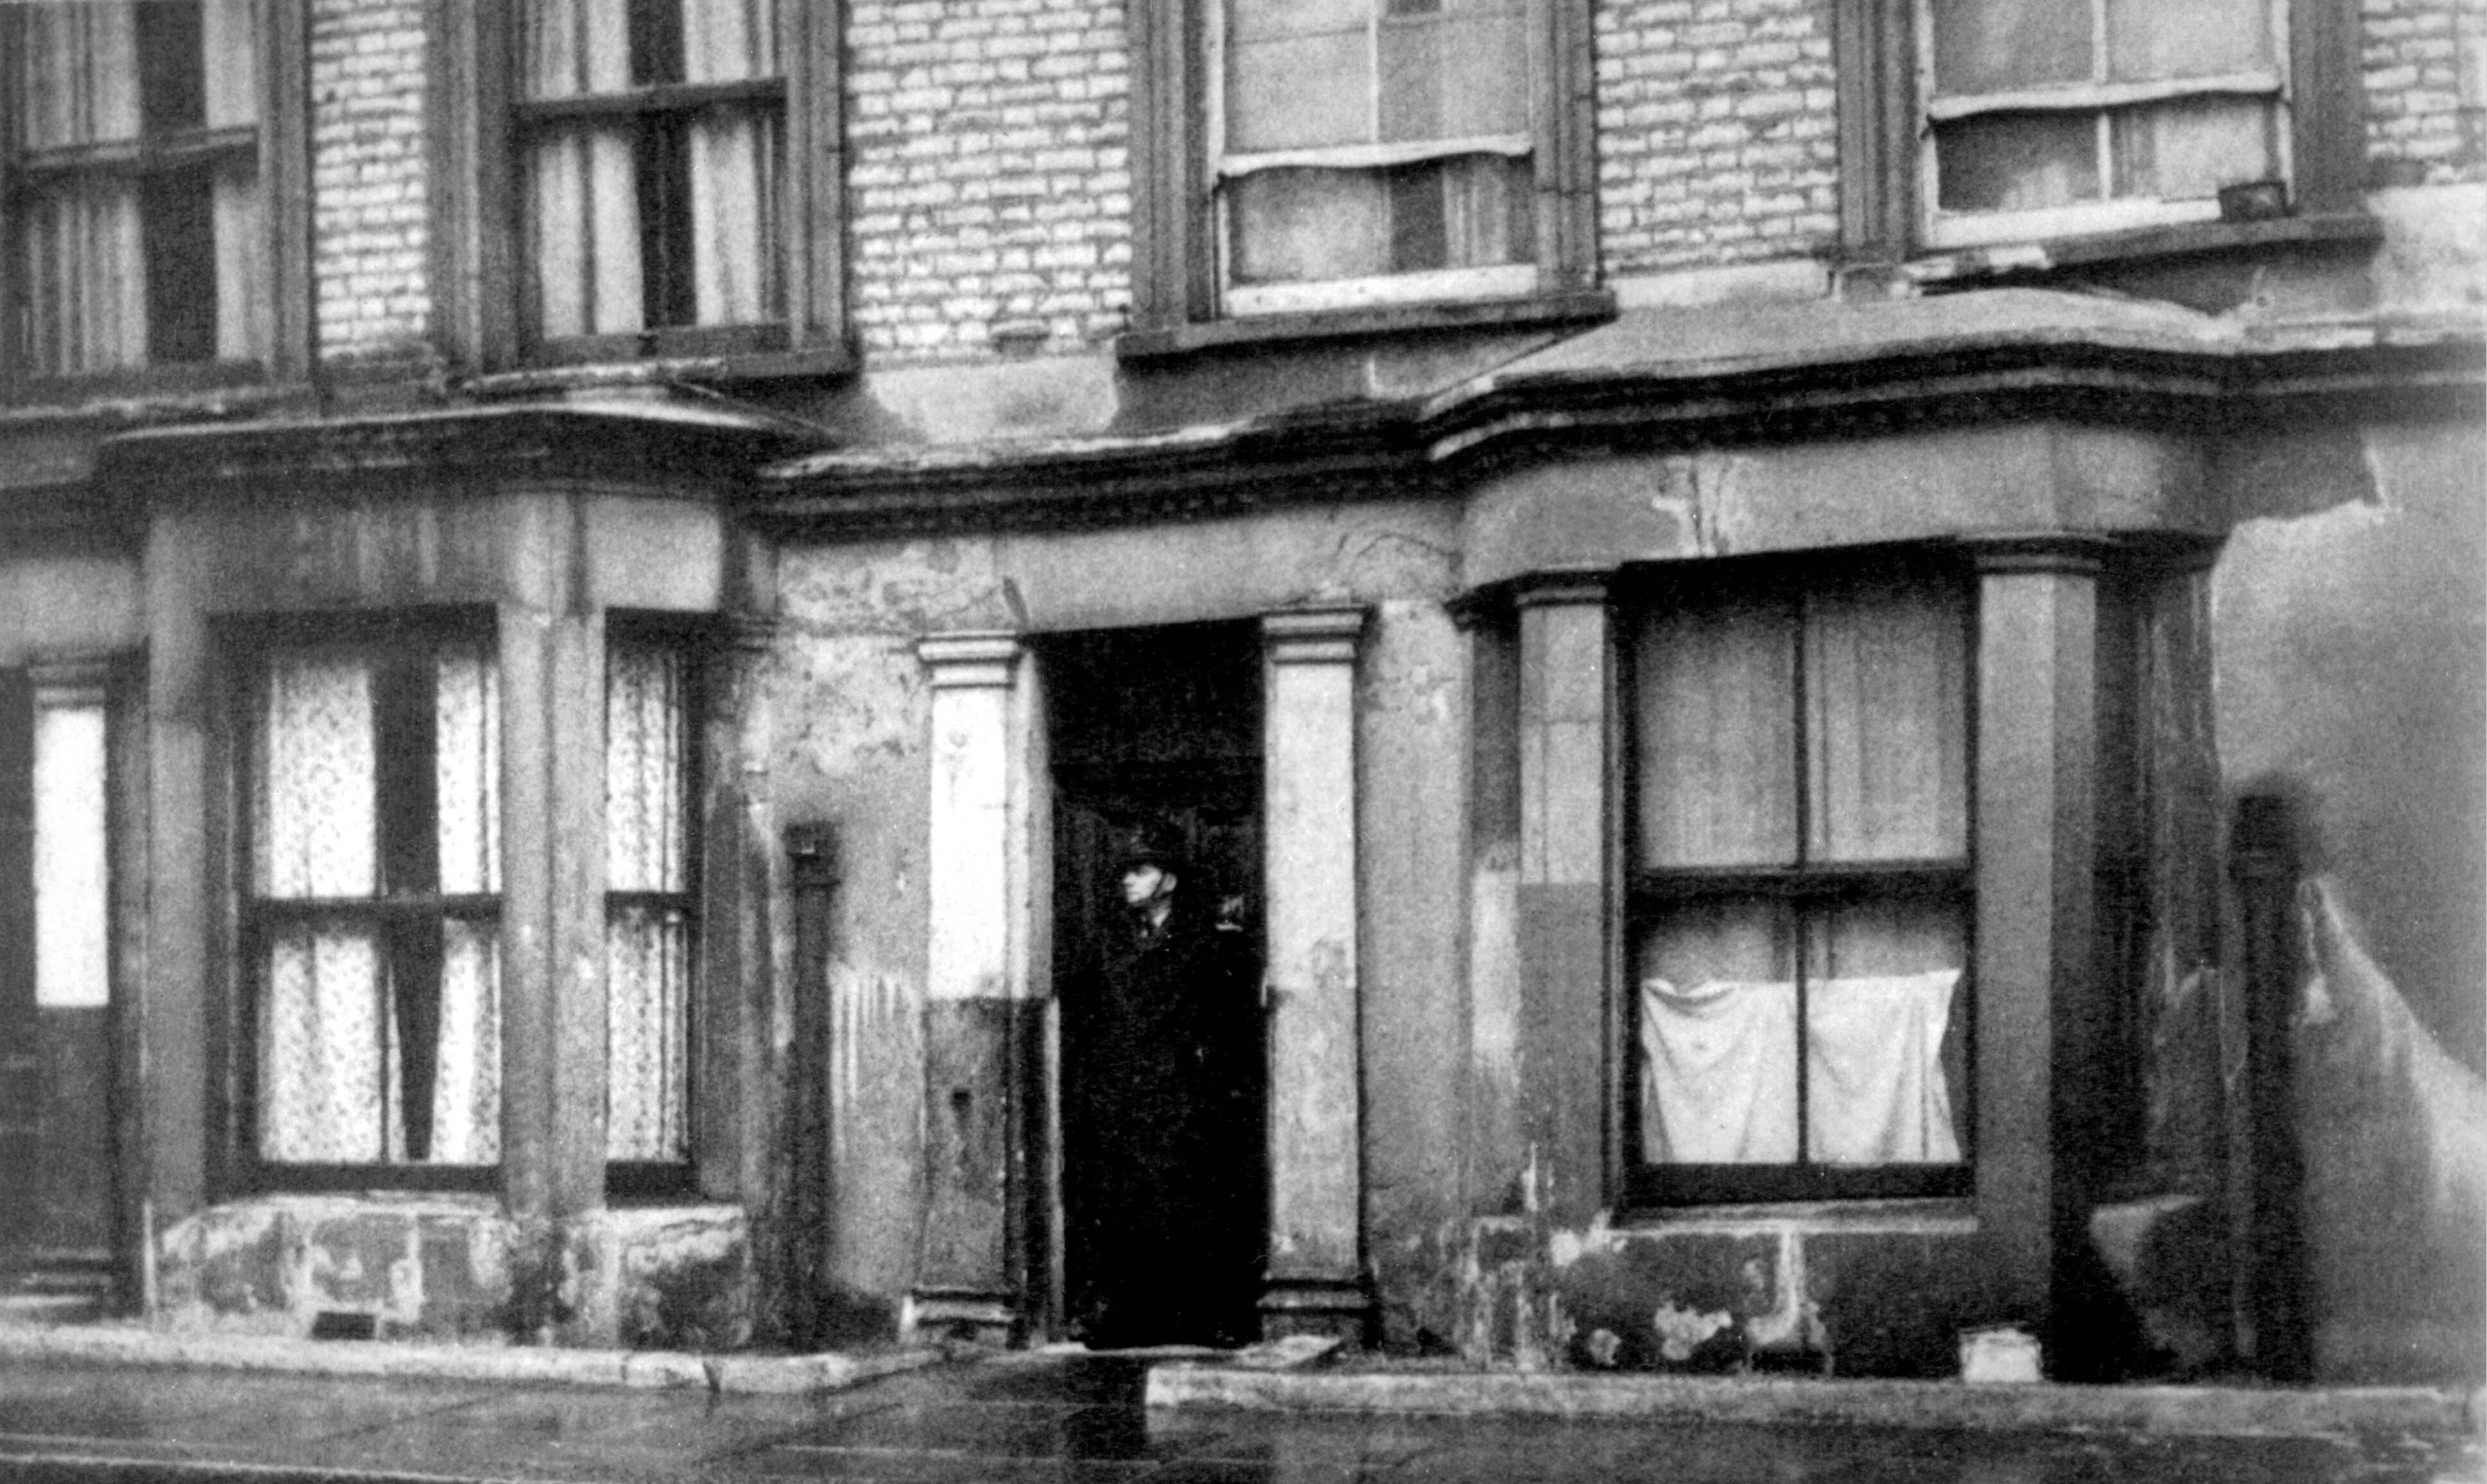 10 Rillington Place - the dismal house in which Christie and Evans lived.